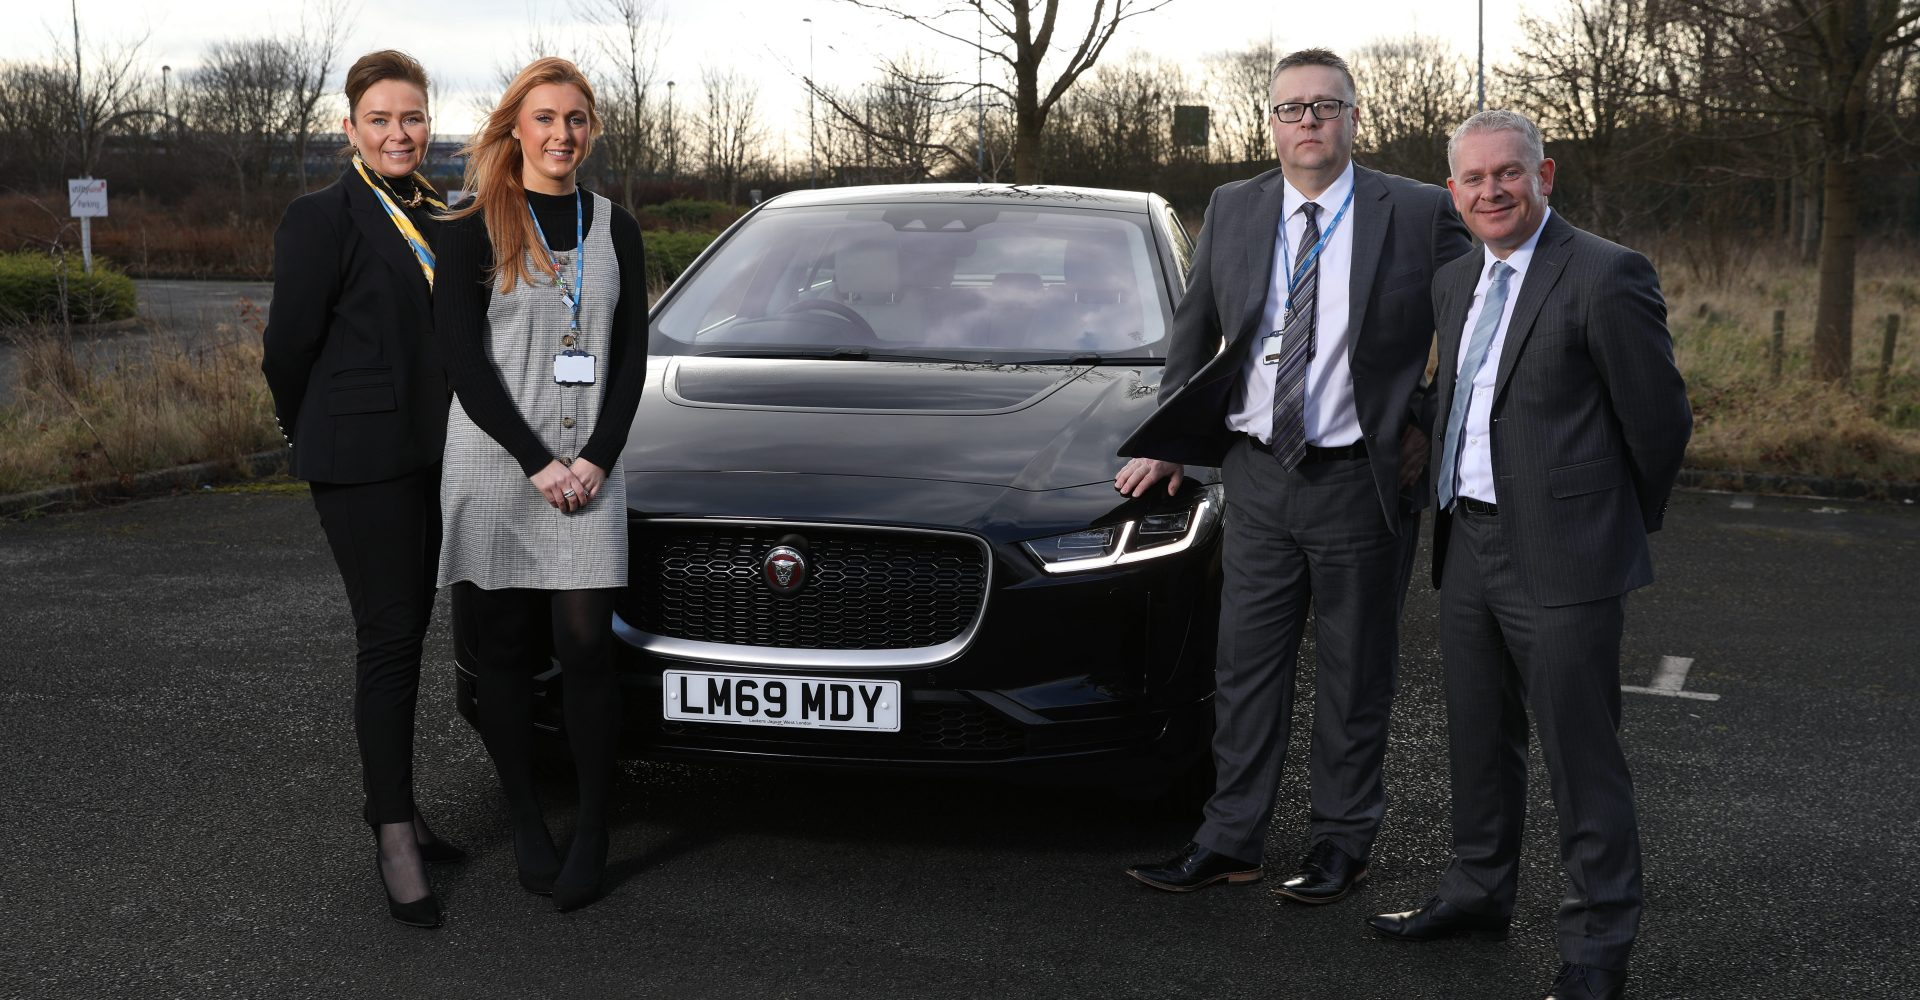 Jaguar signs deal with Northumbria NHS to supply 700 I-Pace EVs